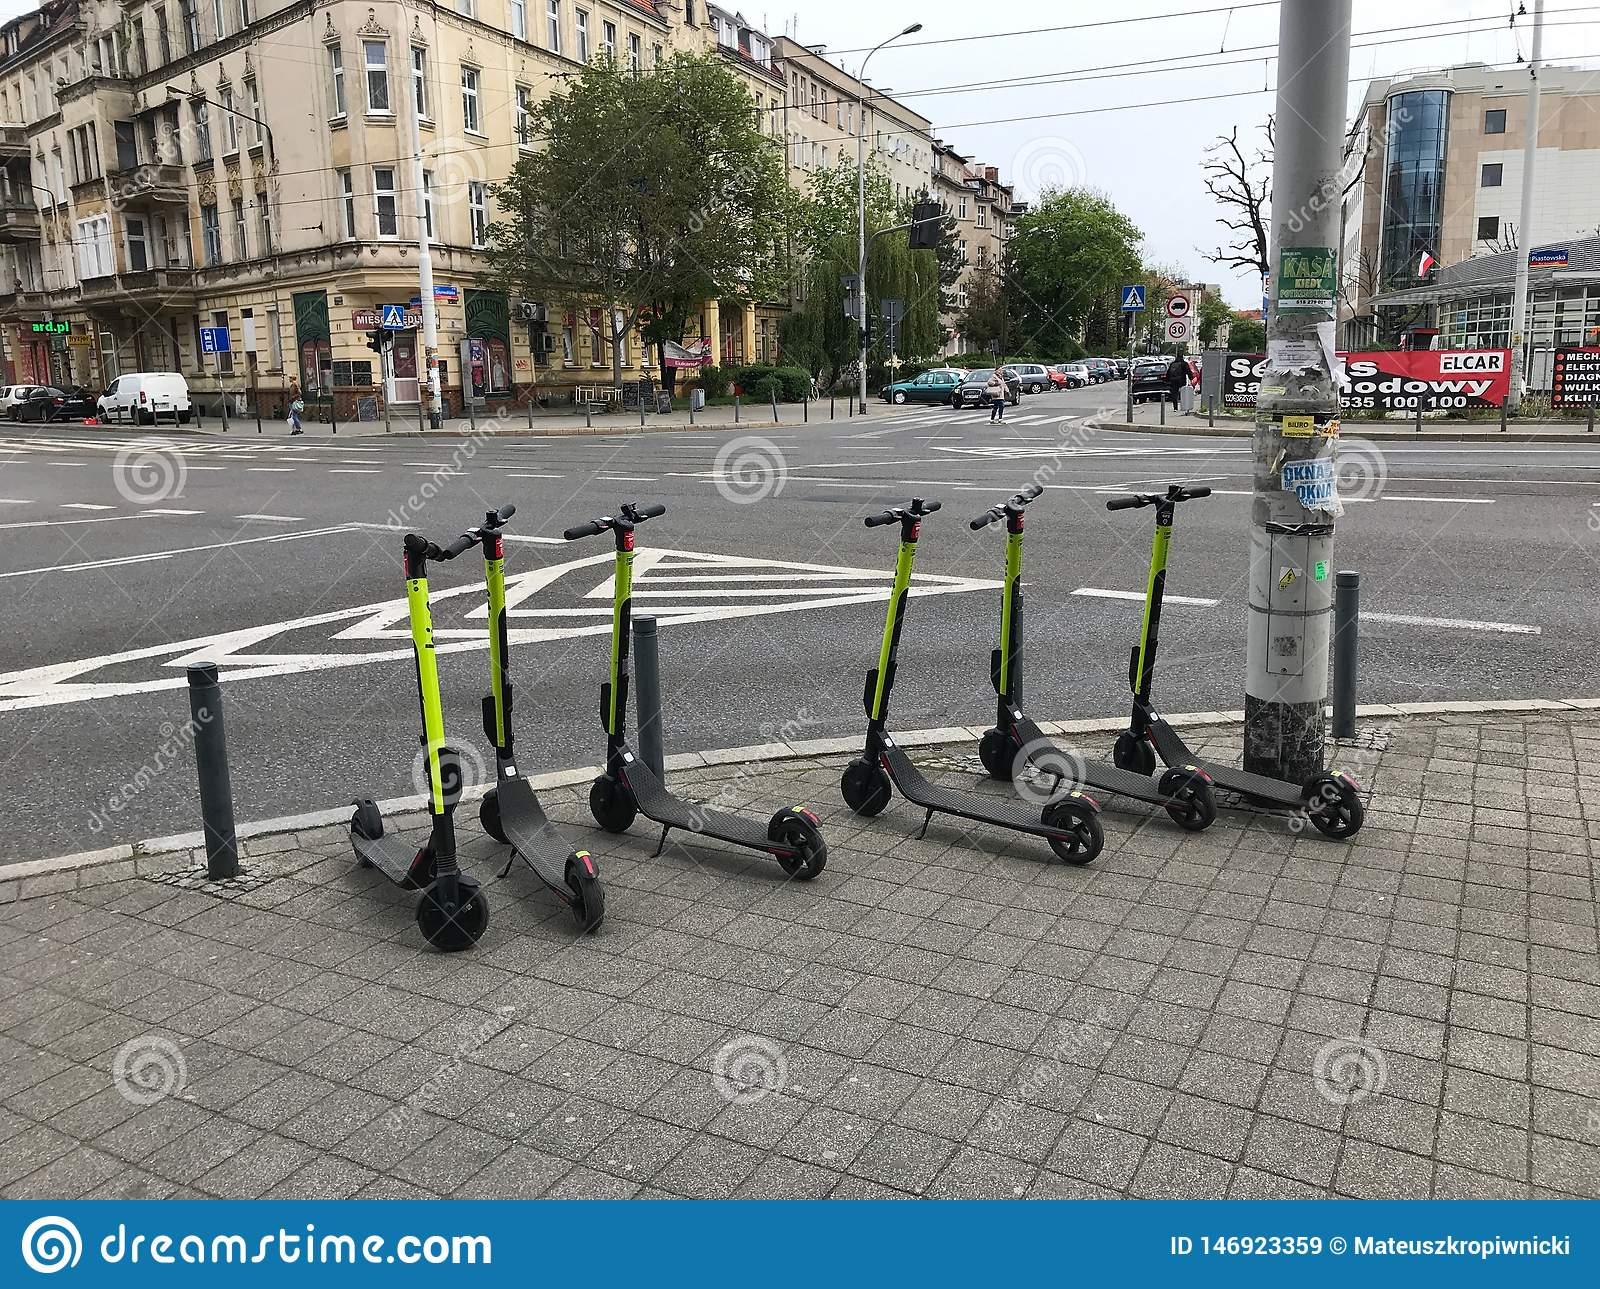 Electric scooters waiting to be used.